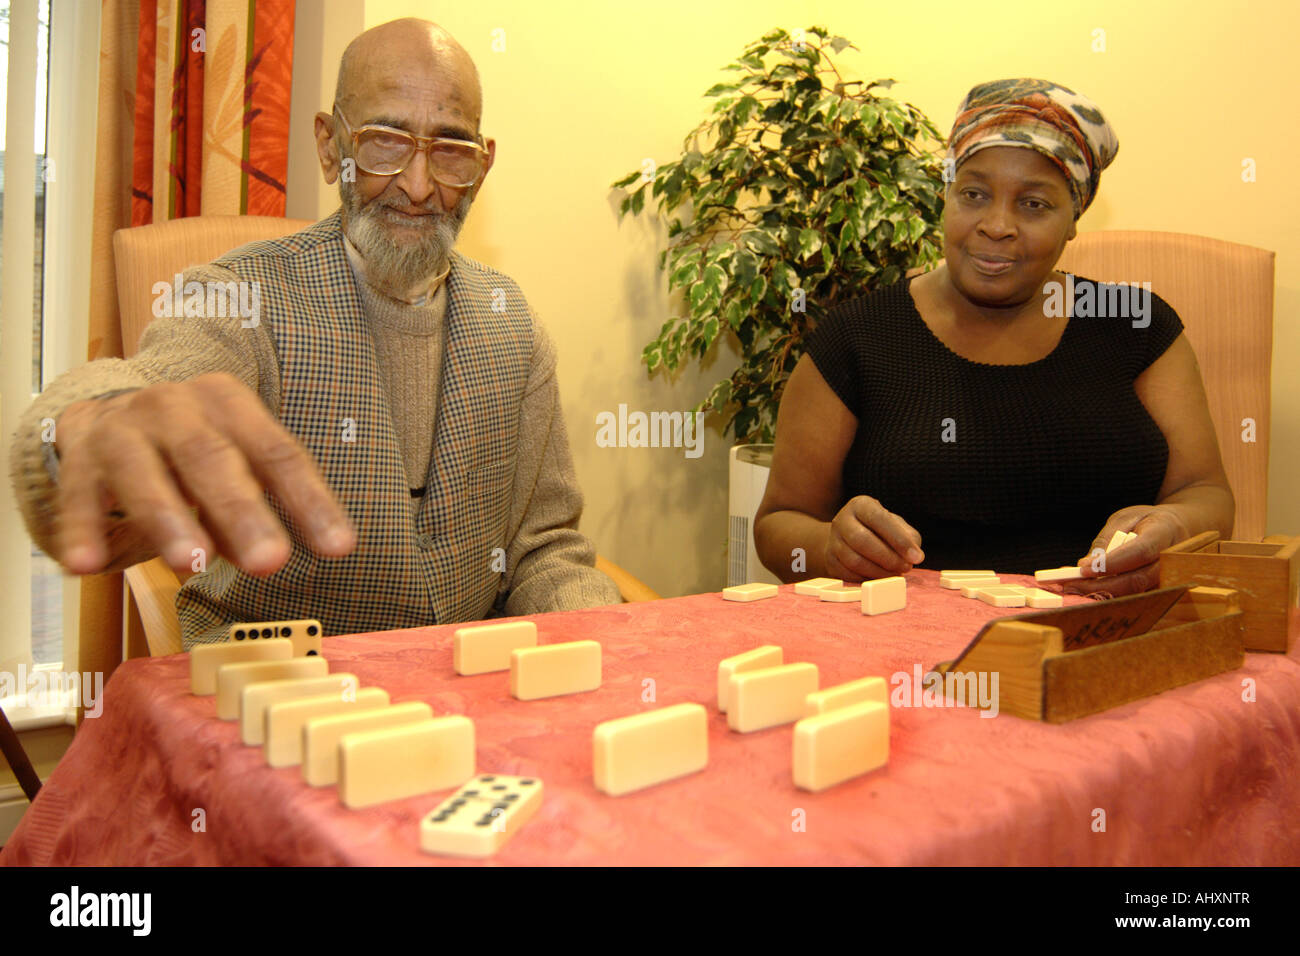 An elderly sikh man plays dominoes with a Care Assistant in